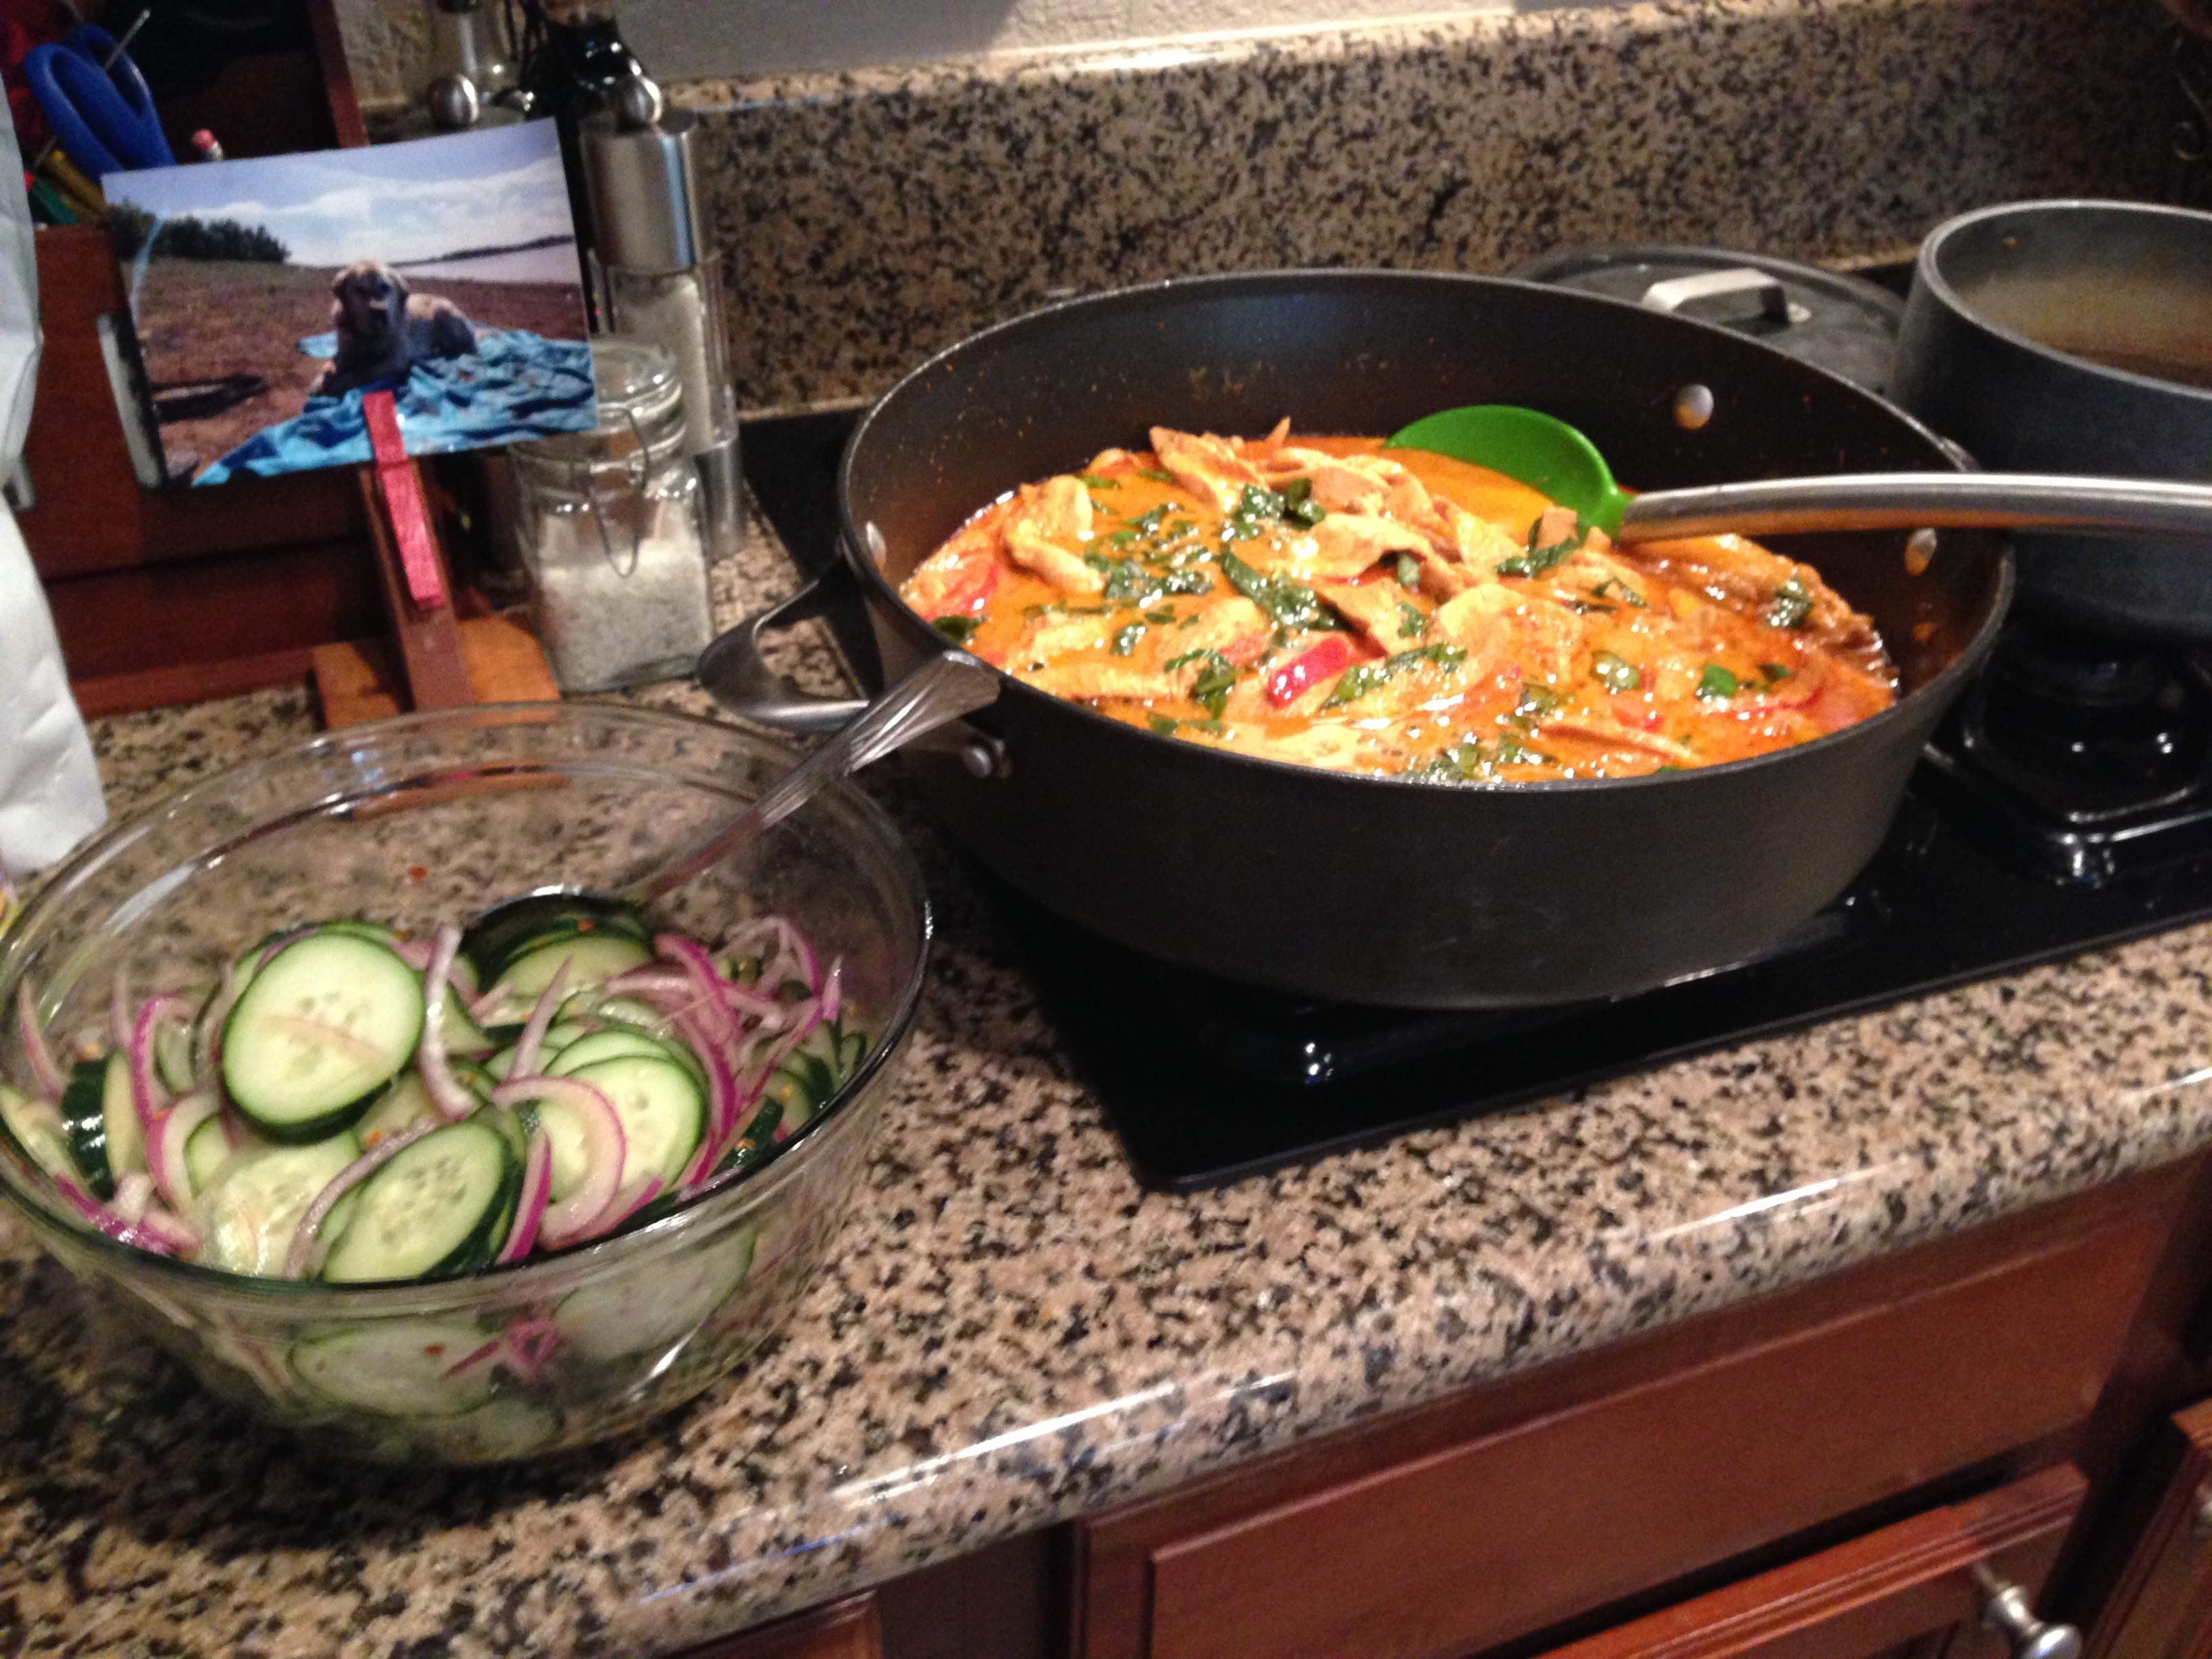 Thai shrimp curry with cucumber salad - gluten free - Paleo - healthy dinner recipe - Triumph Over H